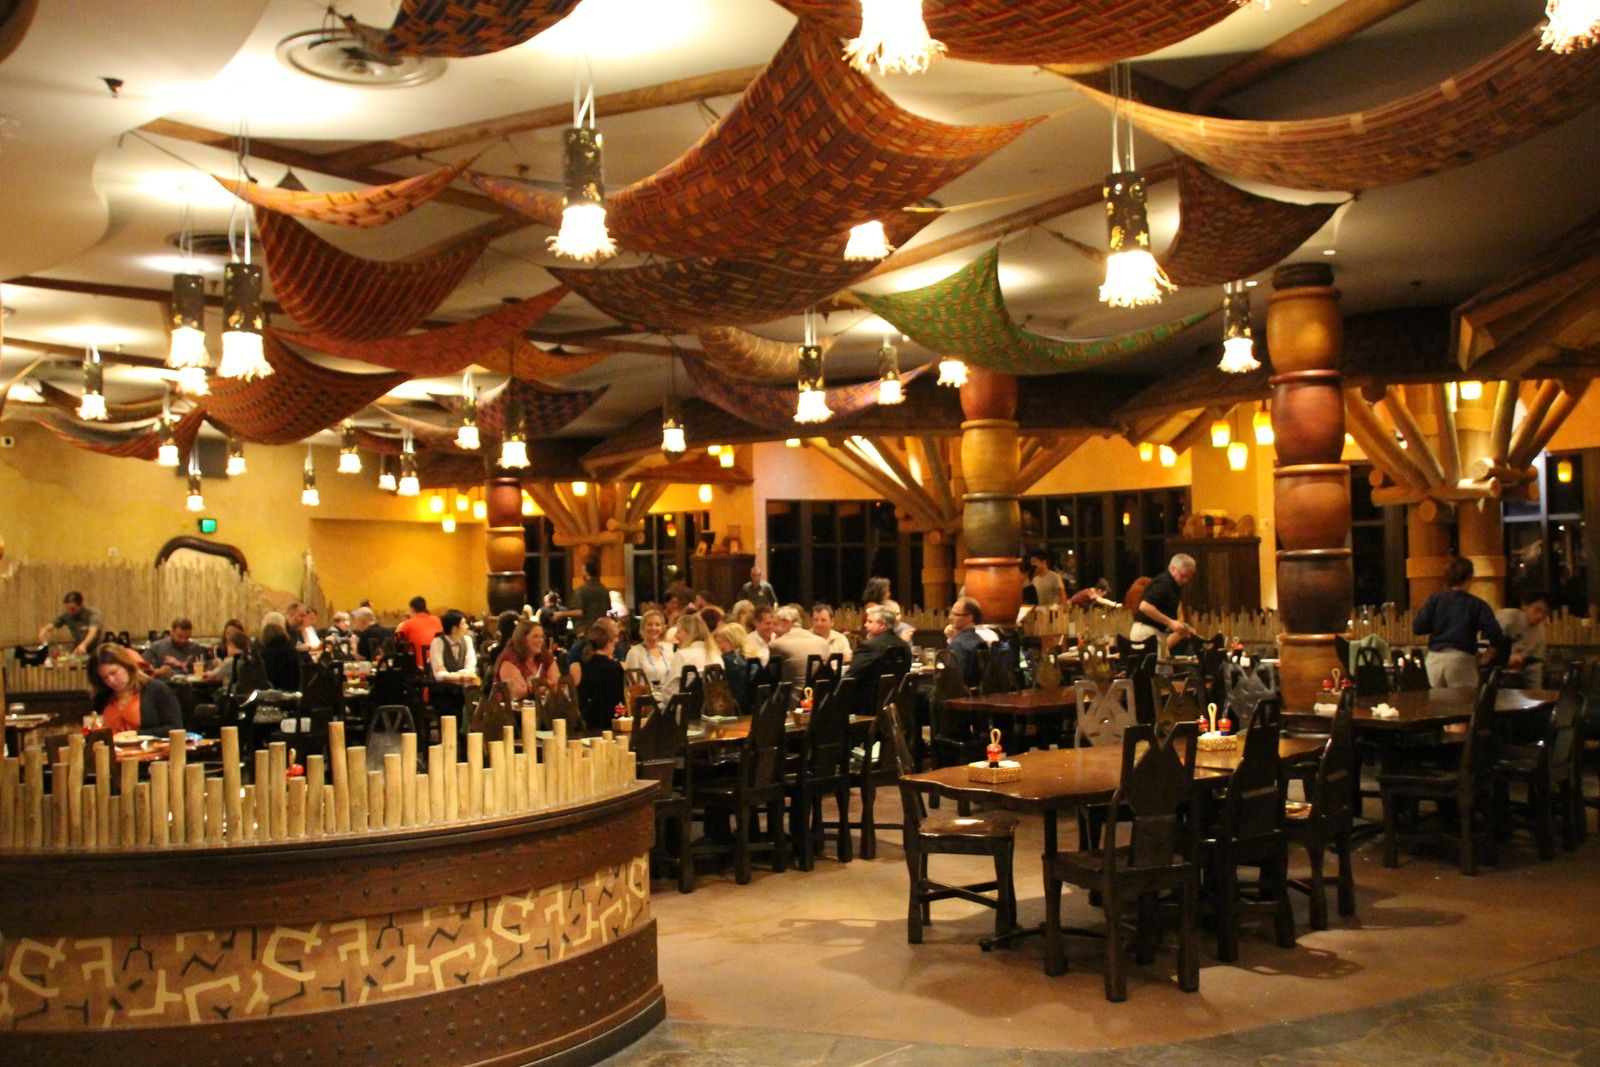 L'hôtel Disney's Animal Kingdom Lodge et son restaurant Boma